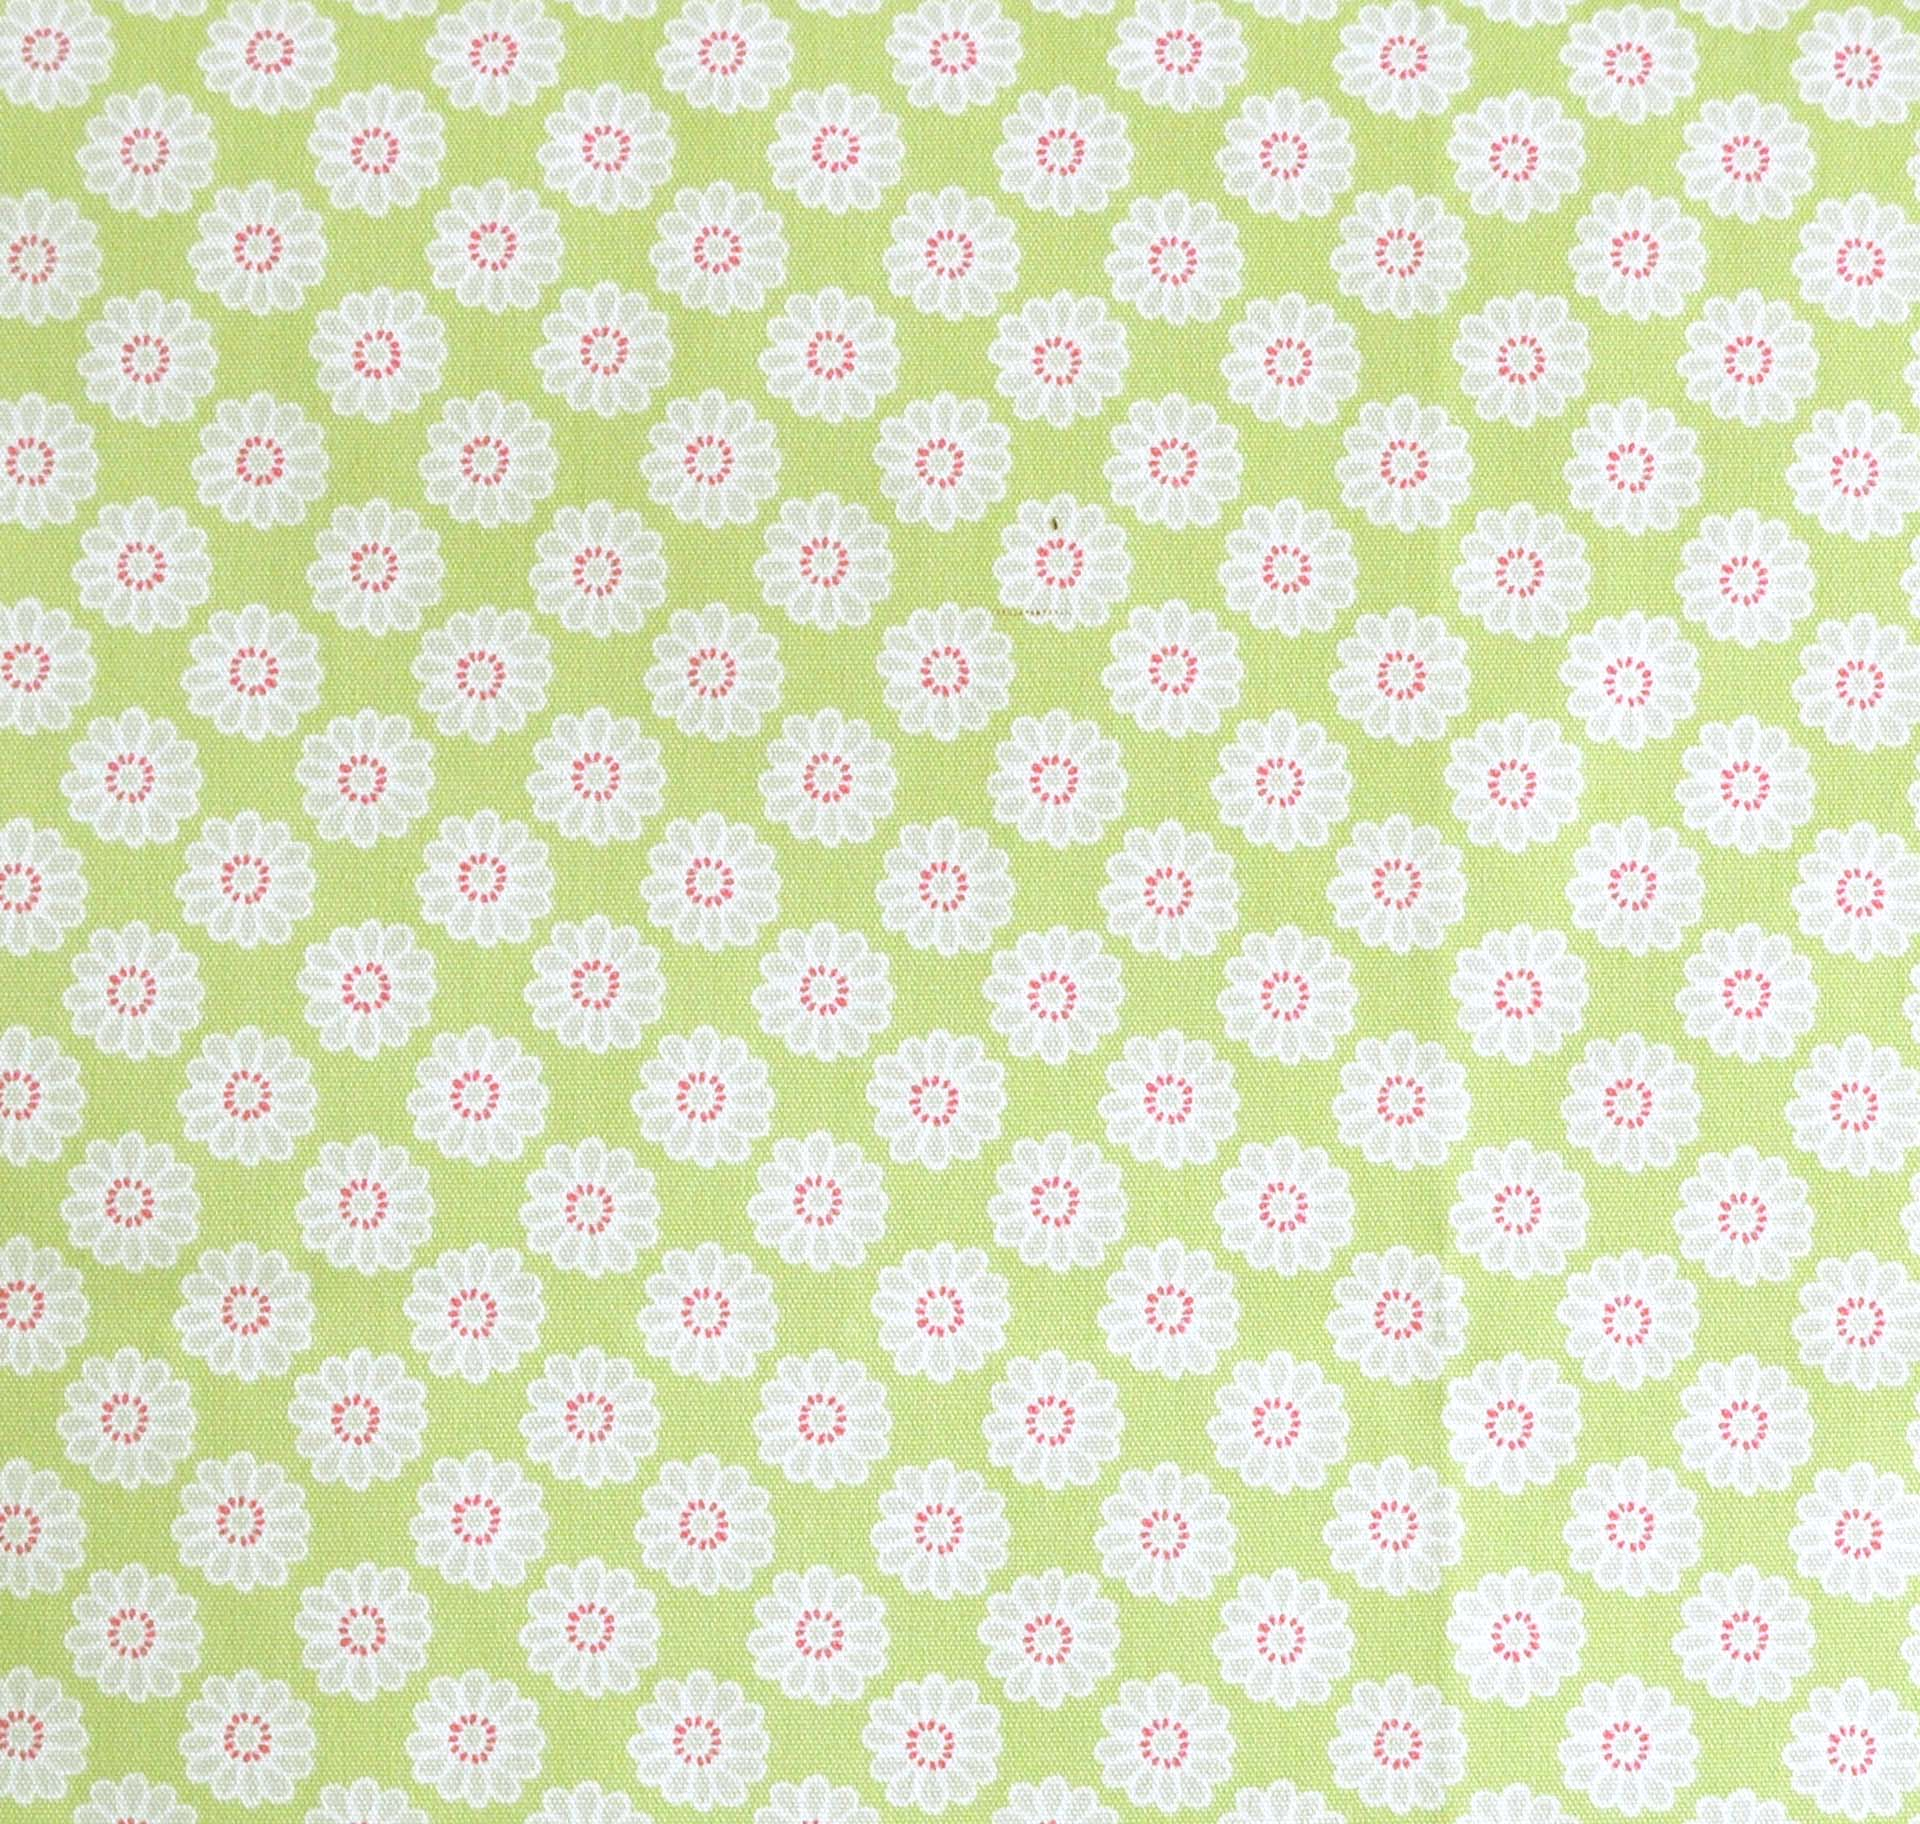 Remnant 1635: Daisy - Lime [0.60 metre] - £6.00 ITEM PRICE